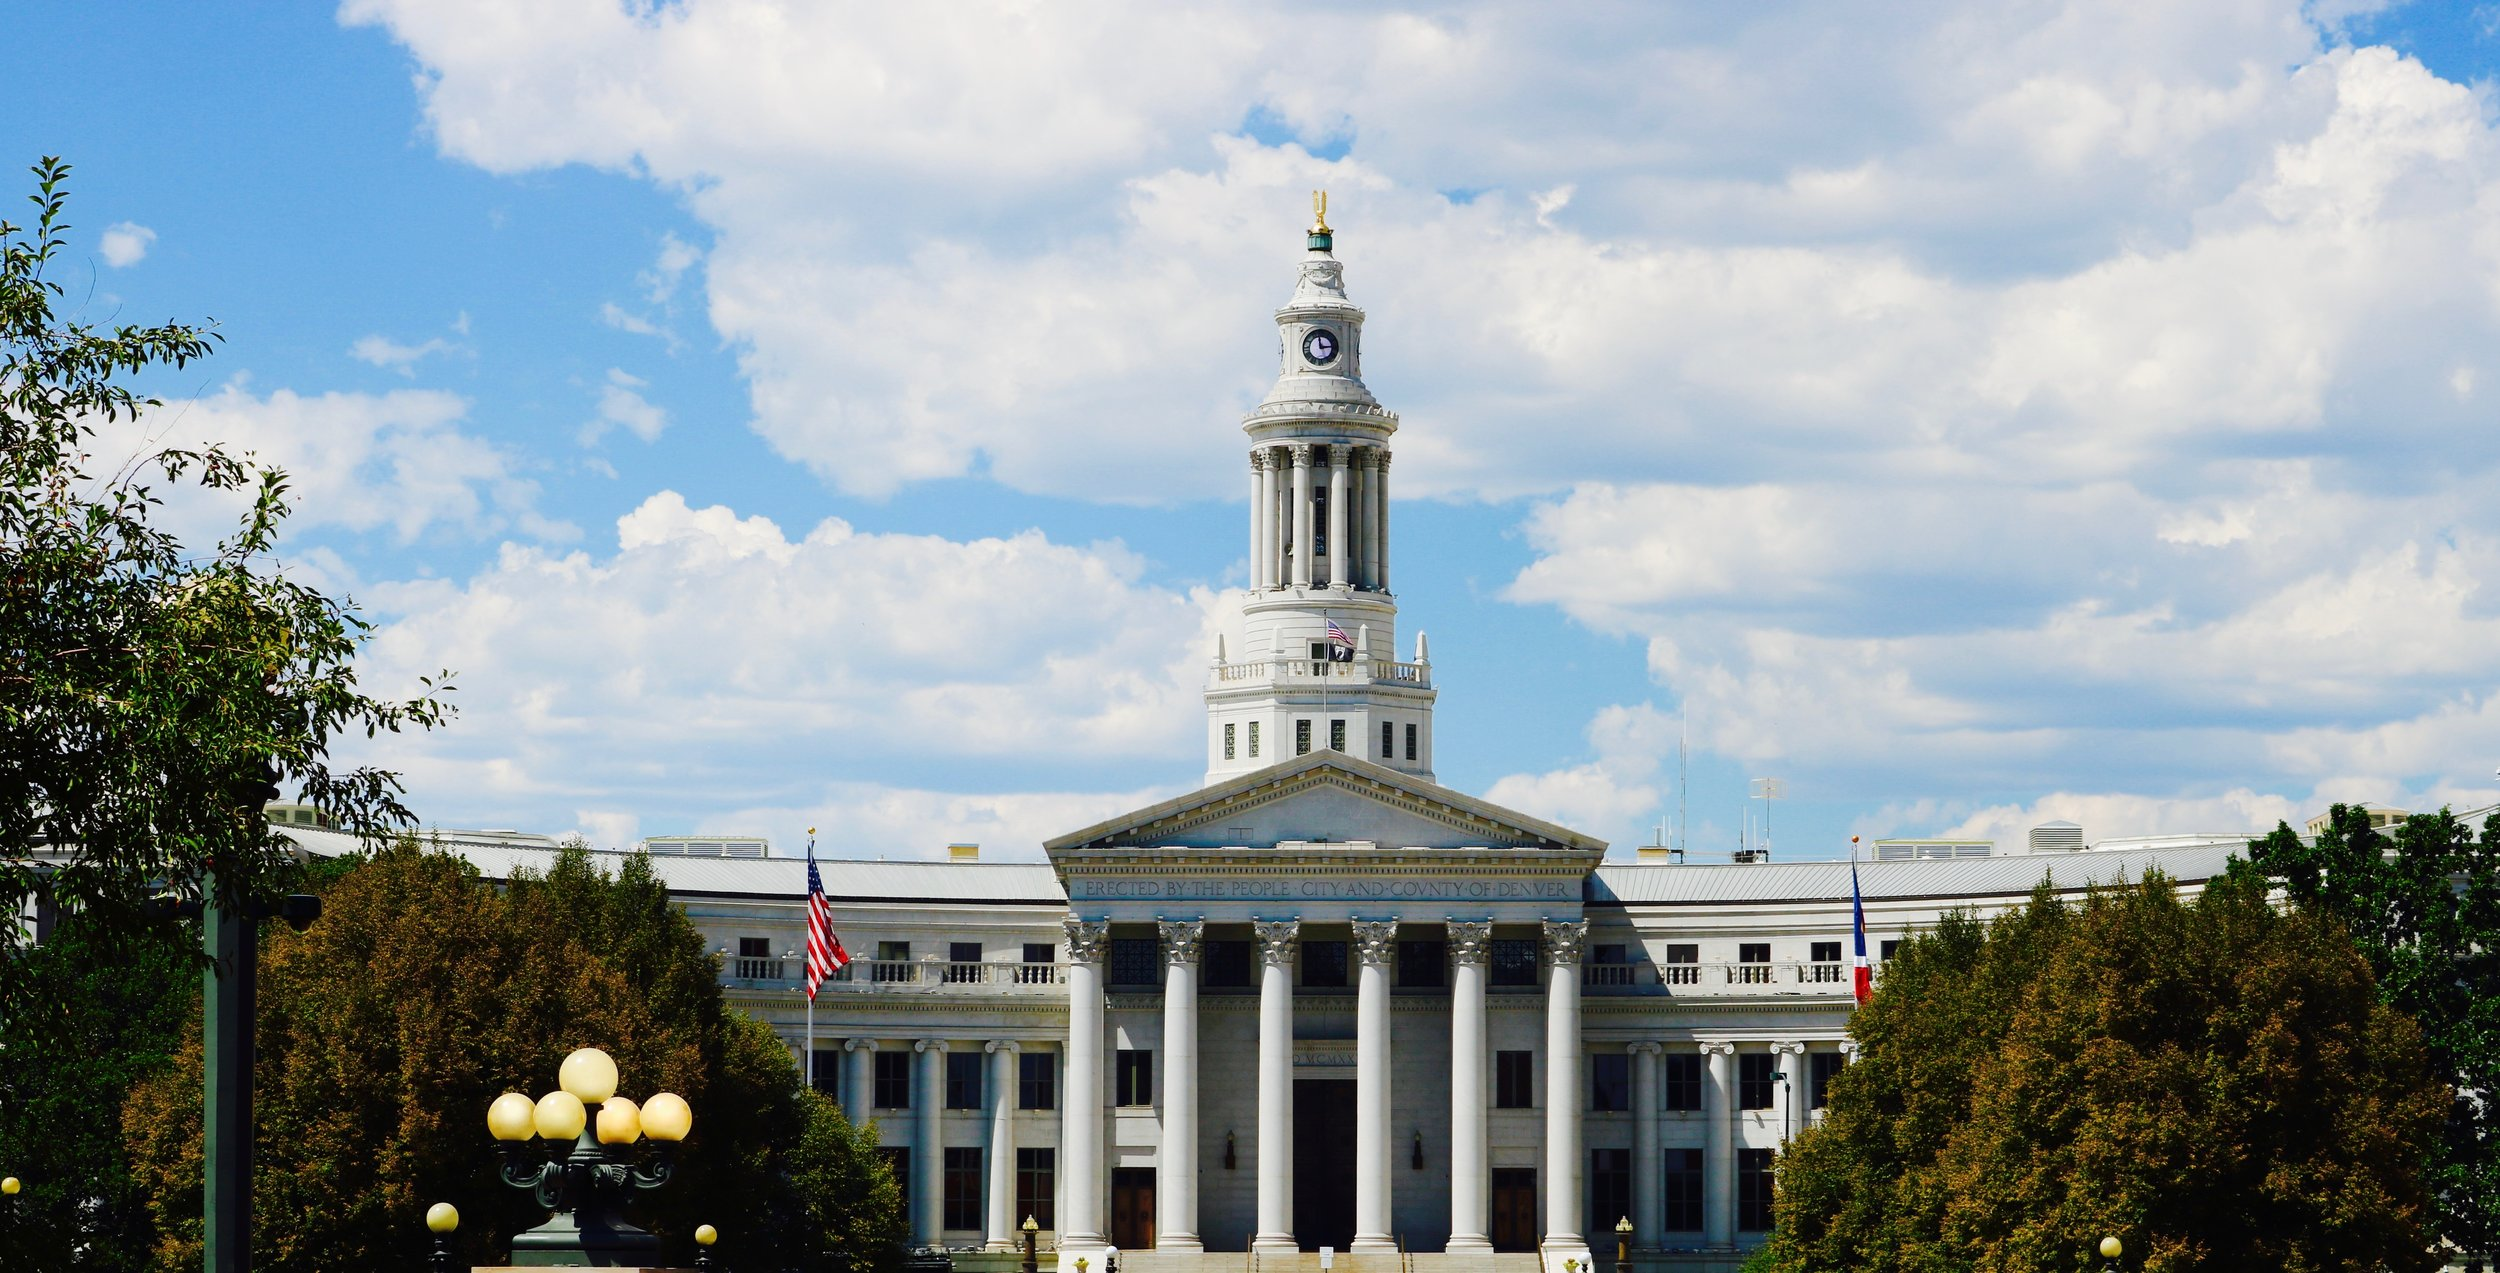 The City and County Building of Denver, Photo by: DJB for TBOT